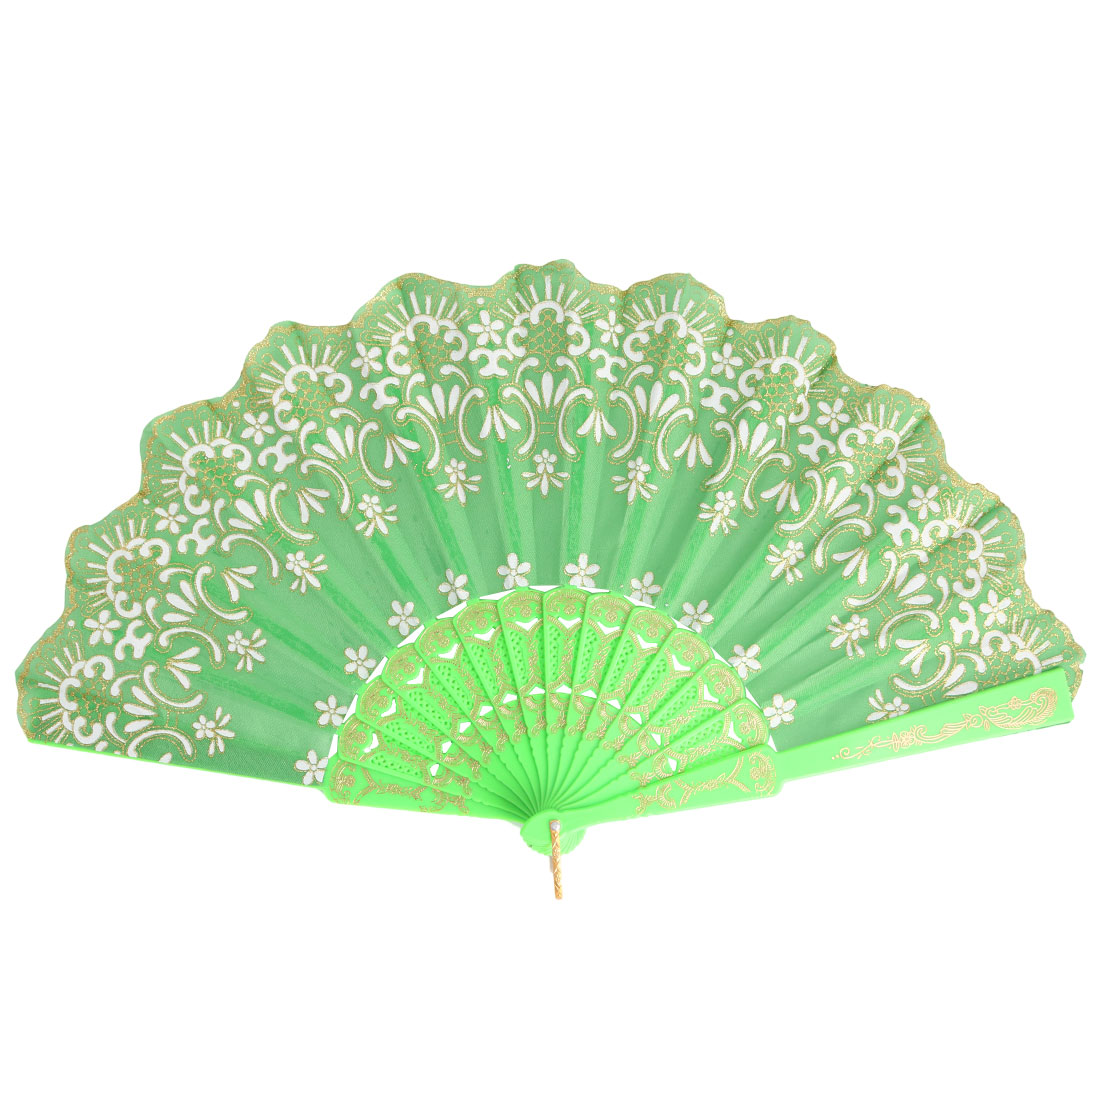 Bedroom Hollow Out Frame Retro Style Hand-crafted Decor Shining Folding Hand Fan